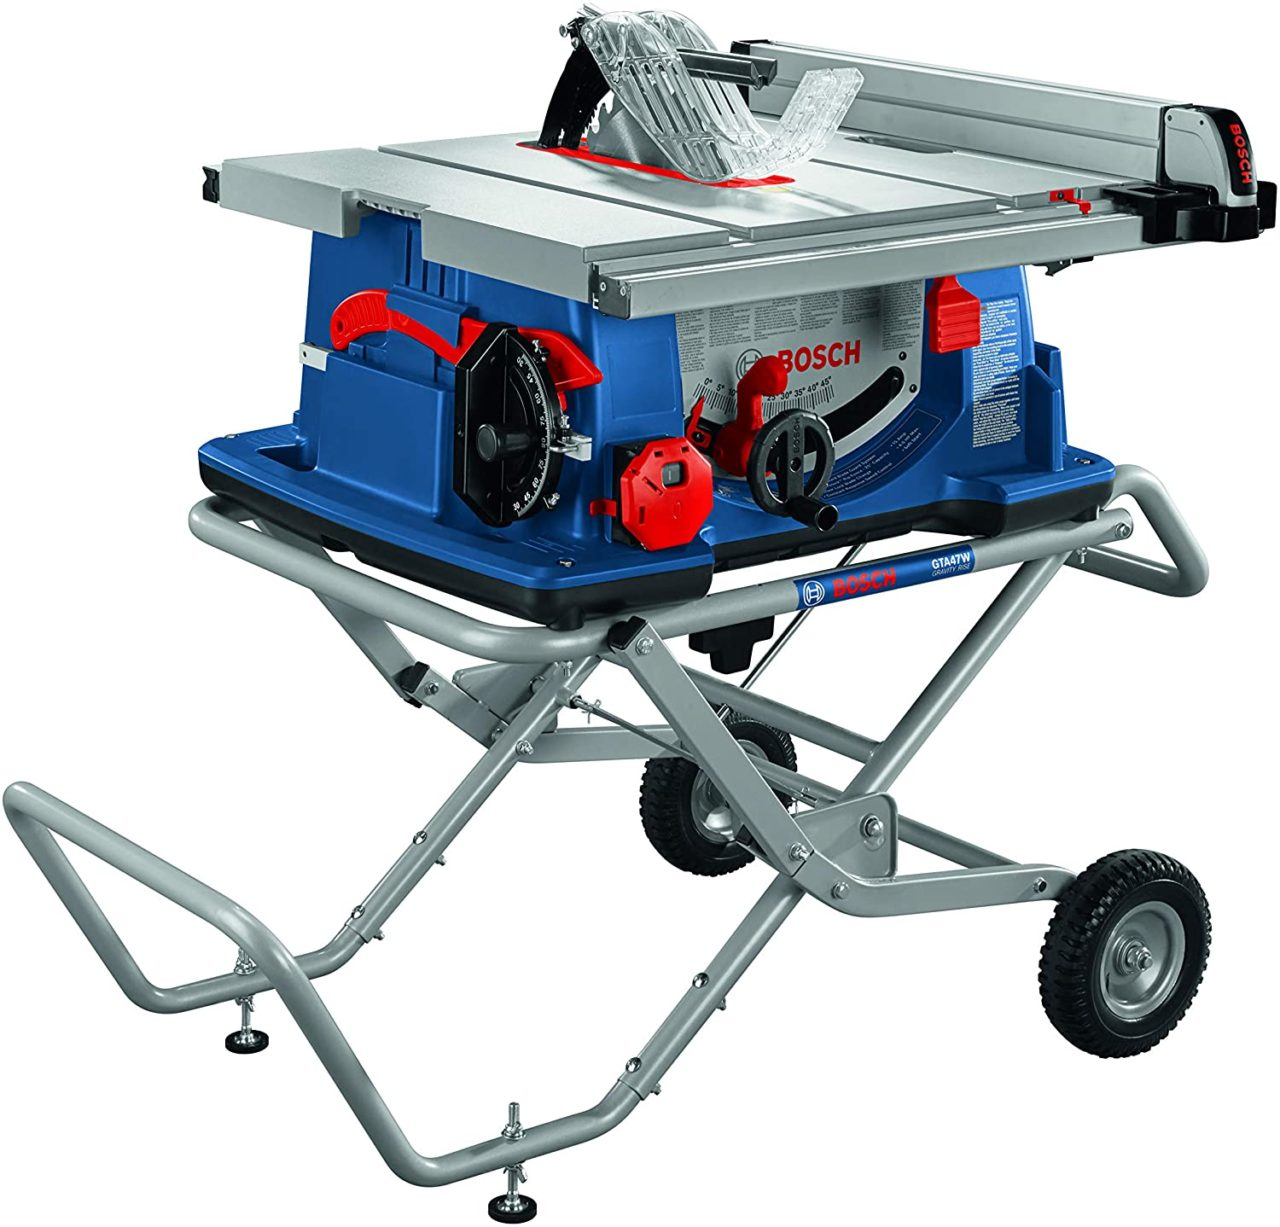 Bosch 4100XC-10 - best all around portable table saw